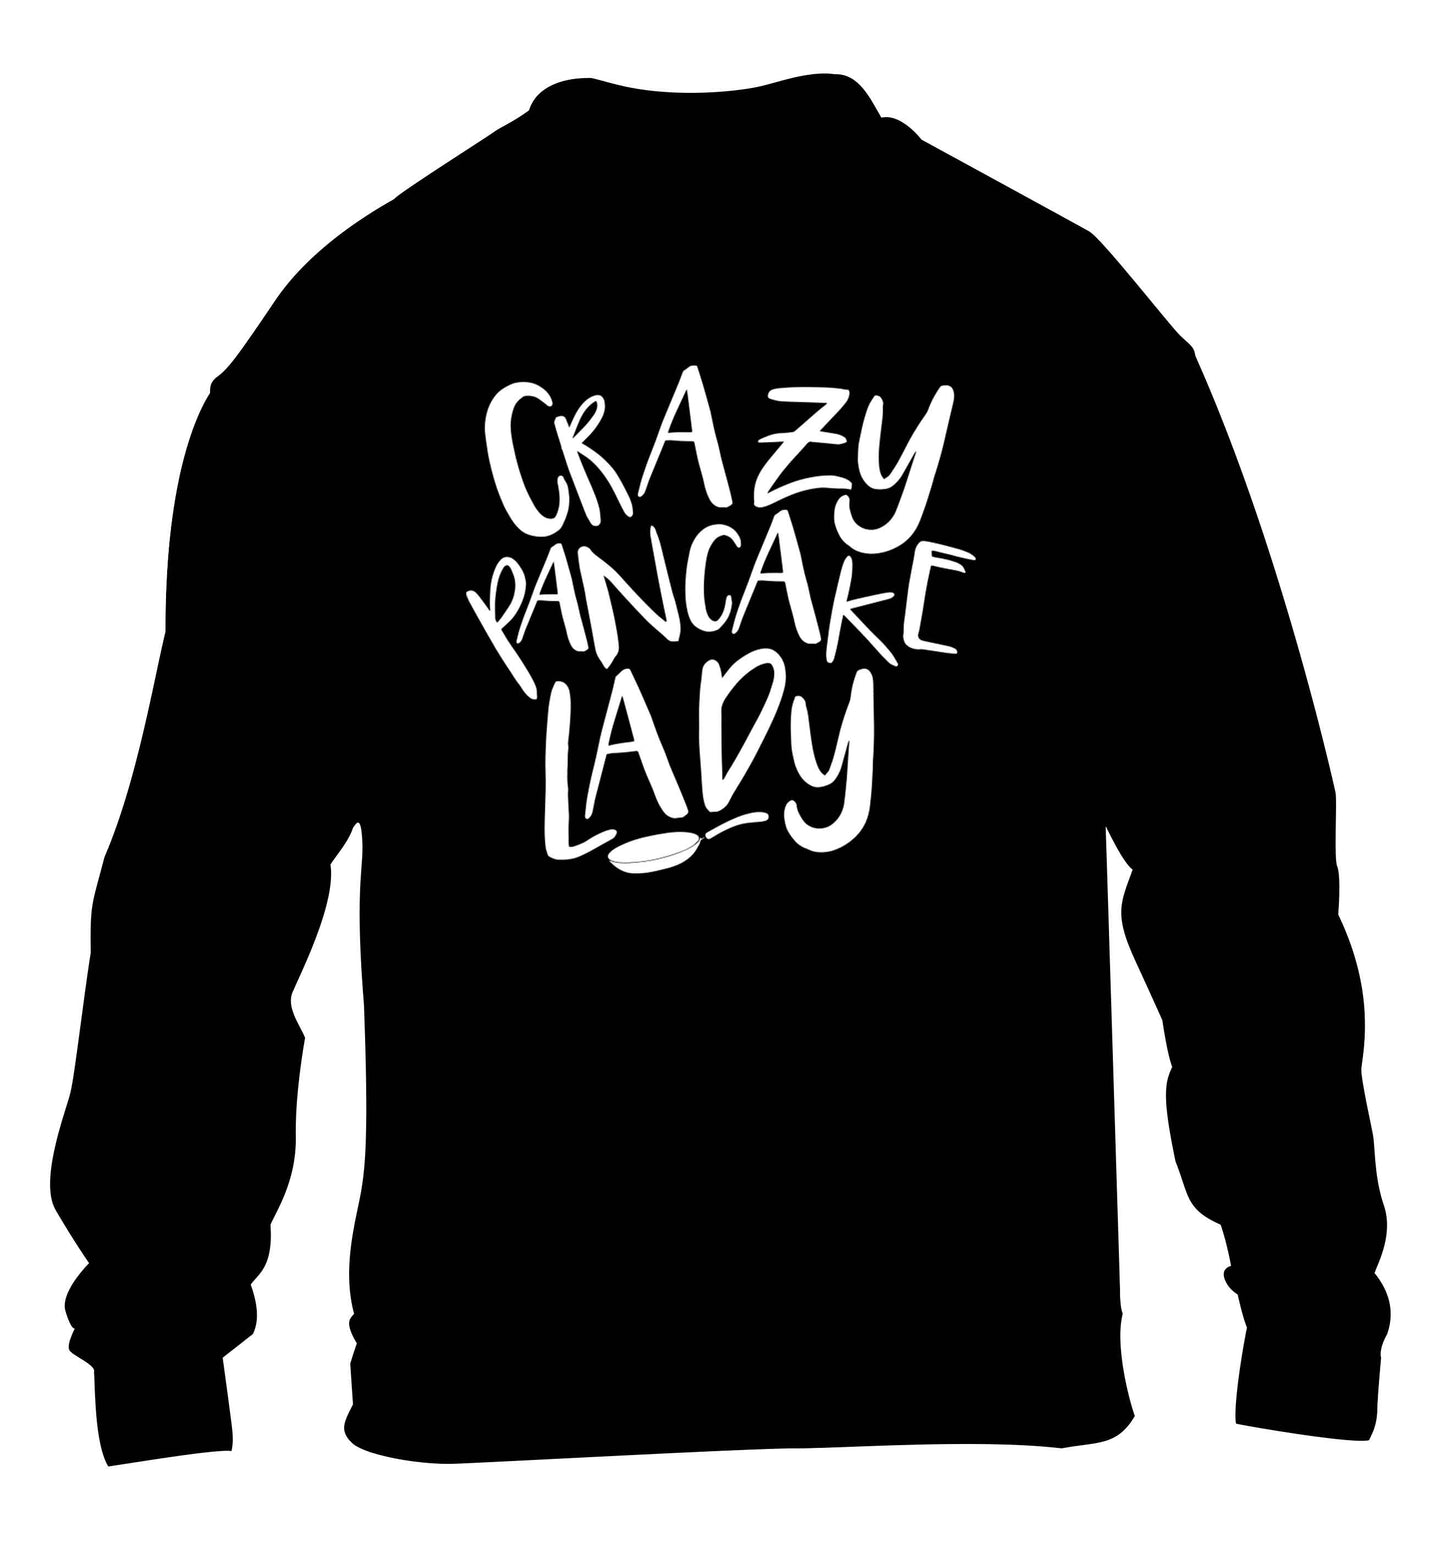 Crazy pancake lady children's black sweater 12-13 Years